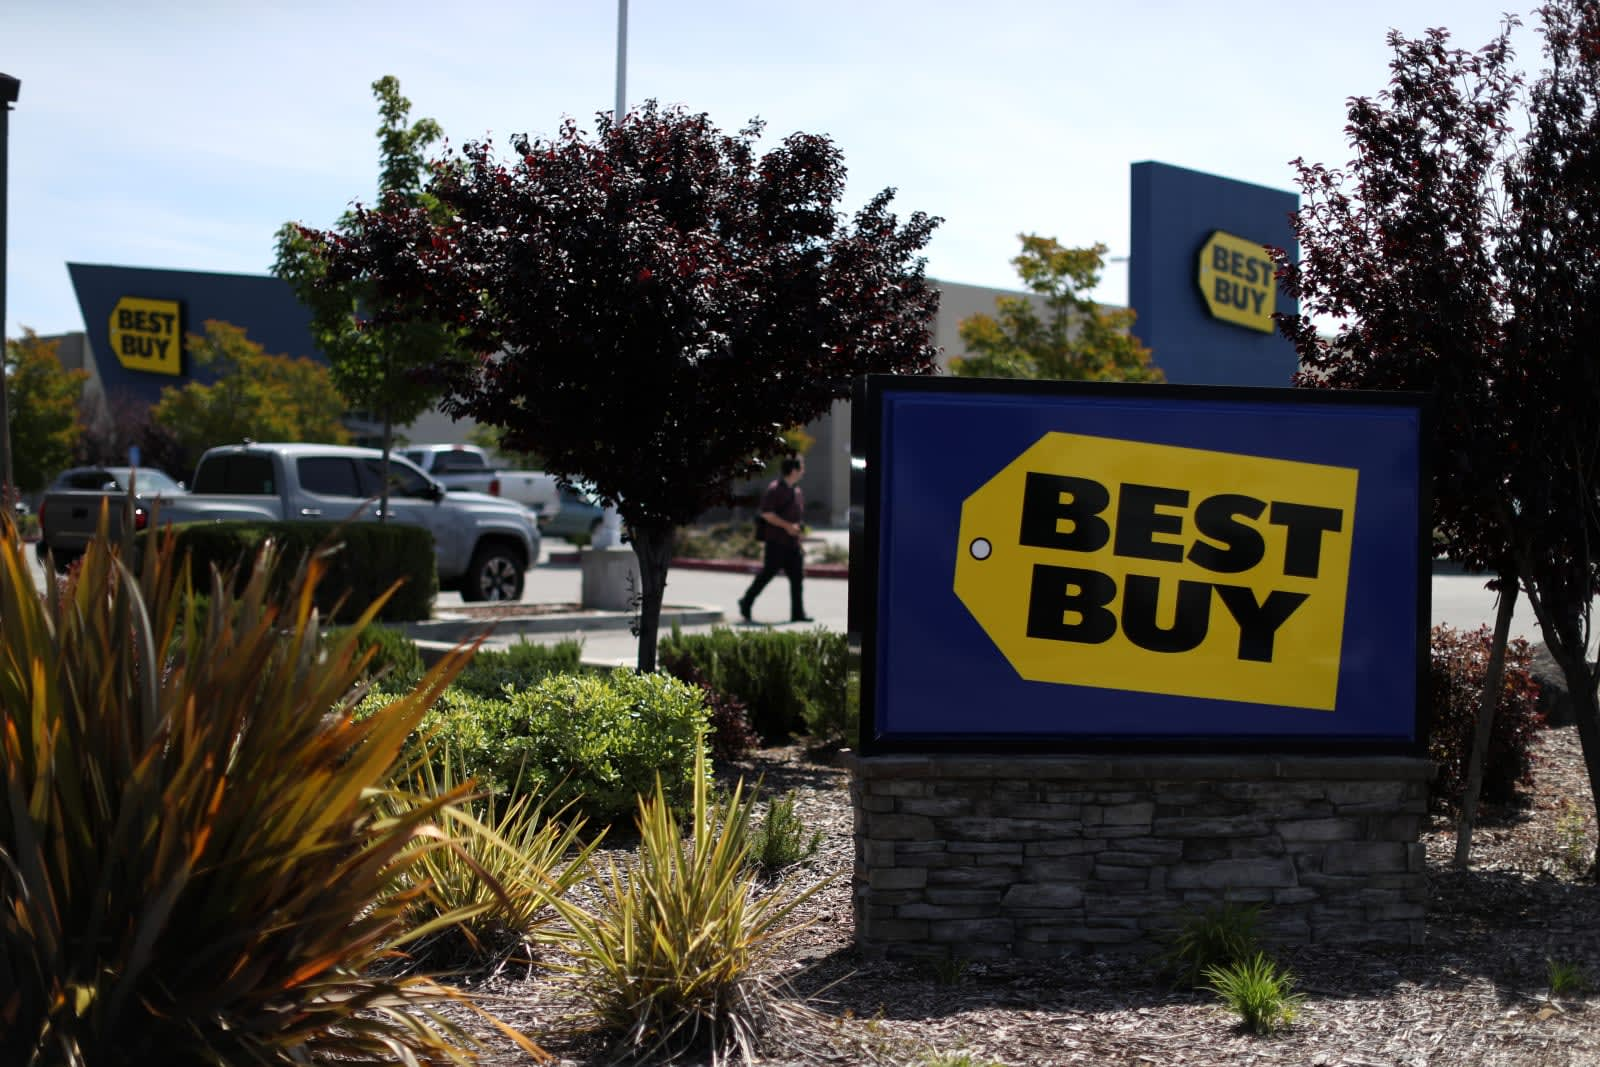 Best Buy stores will soon offer Apple-certified repairs